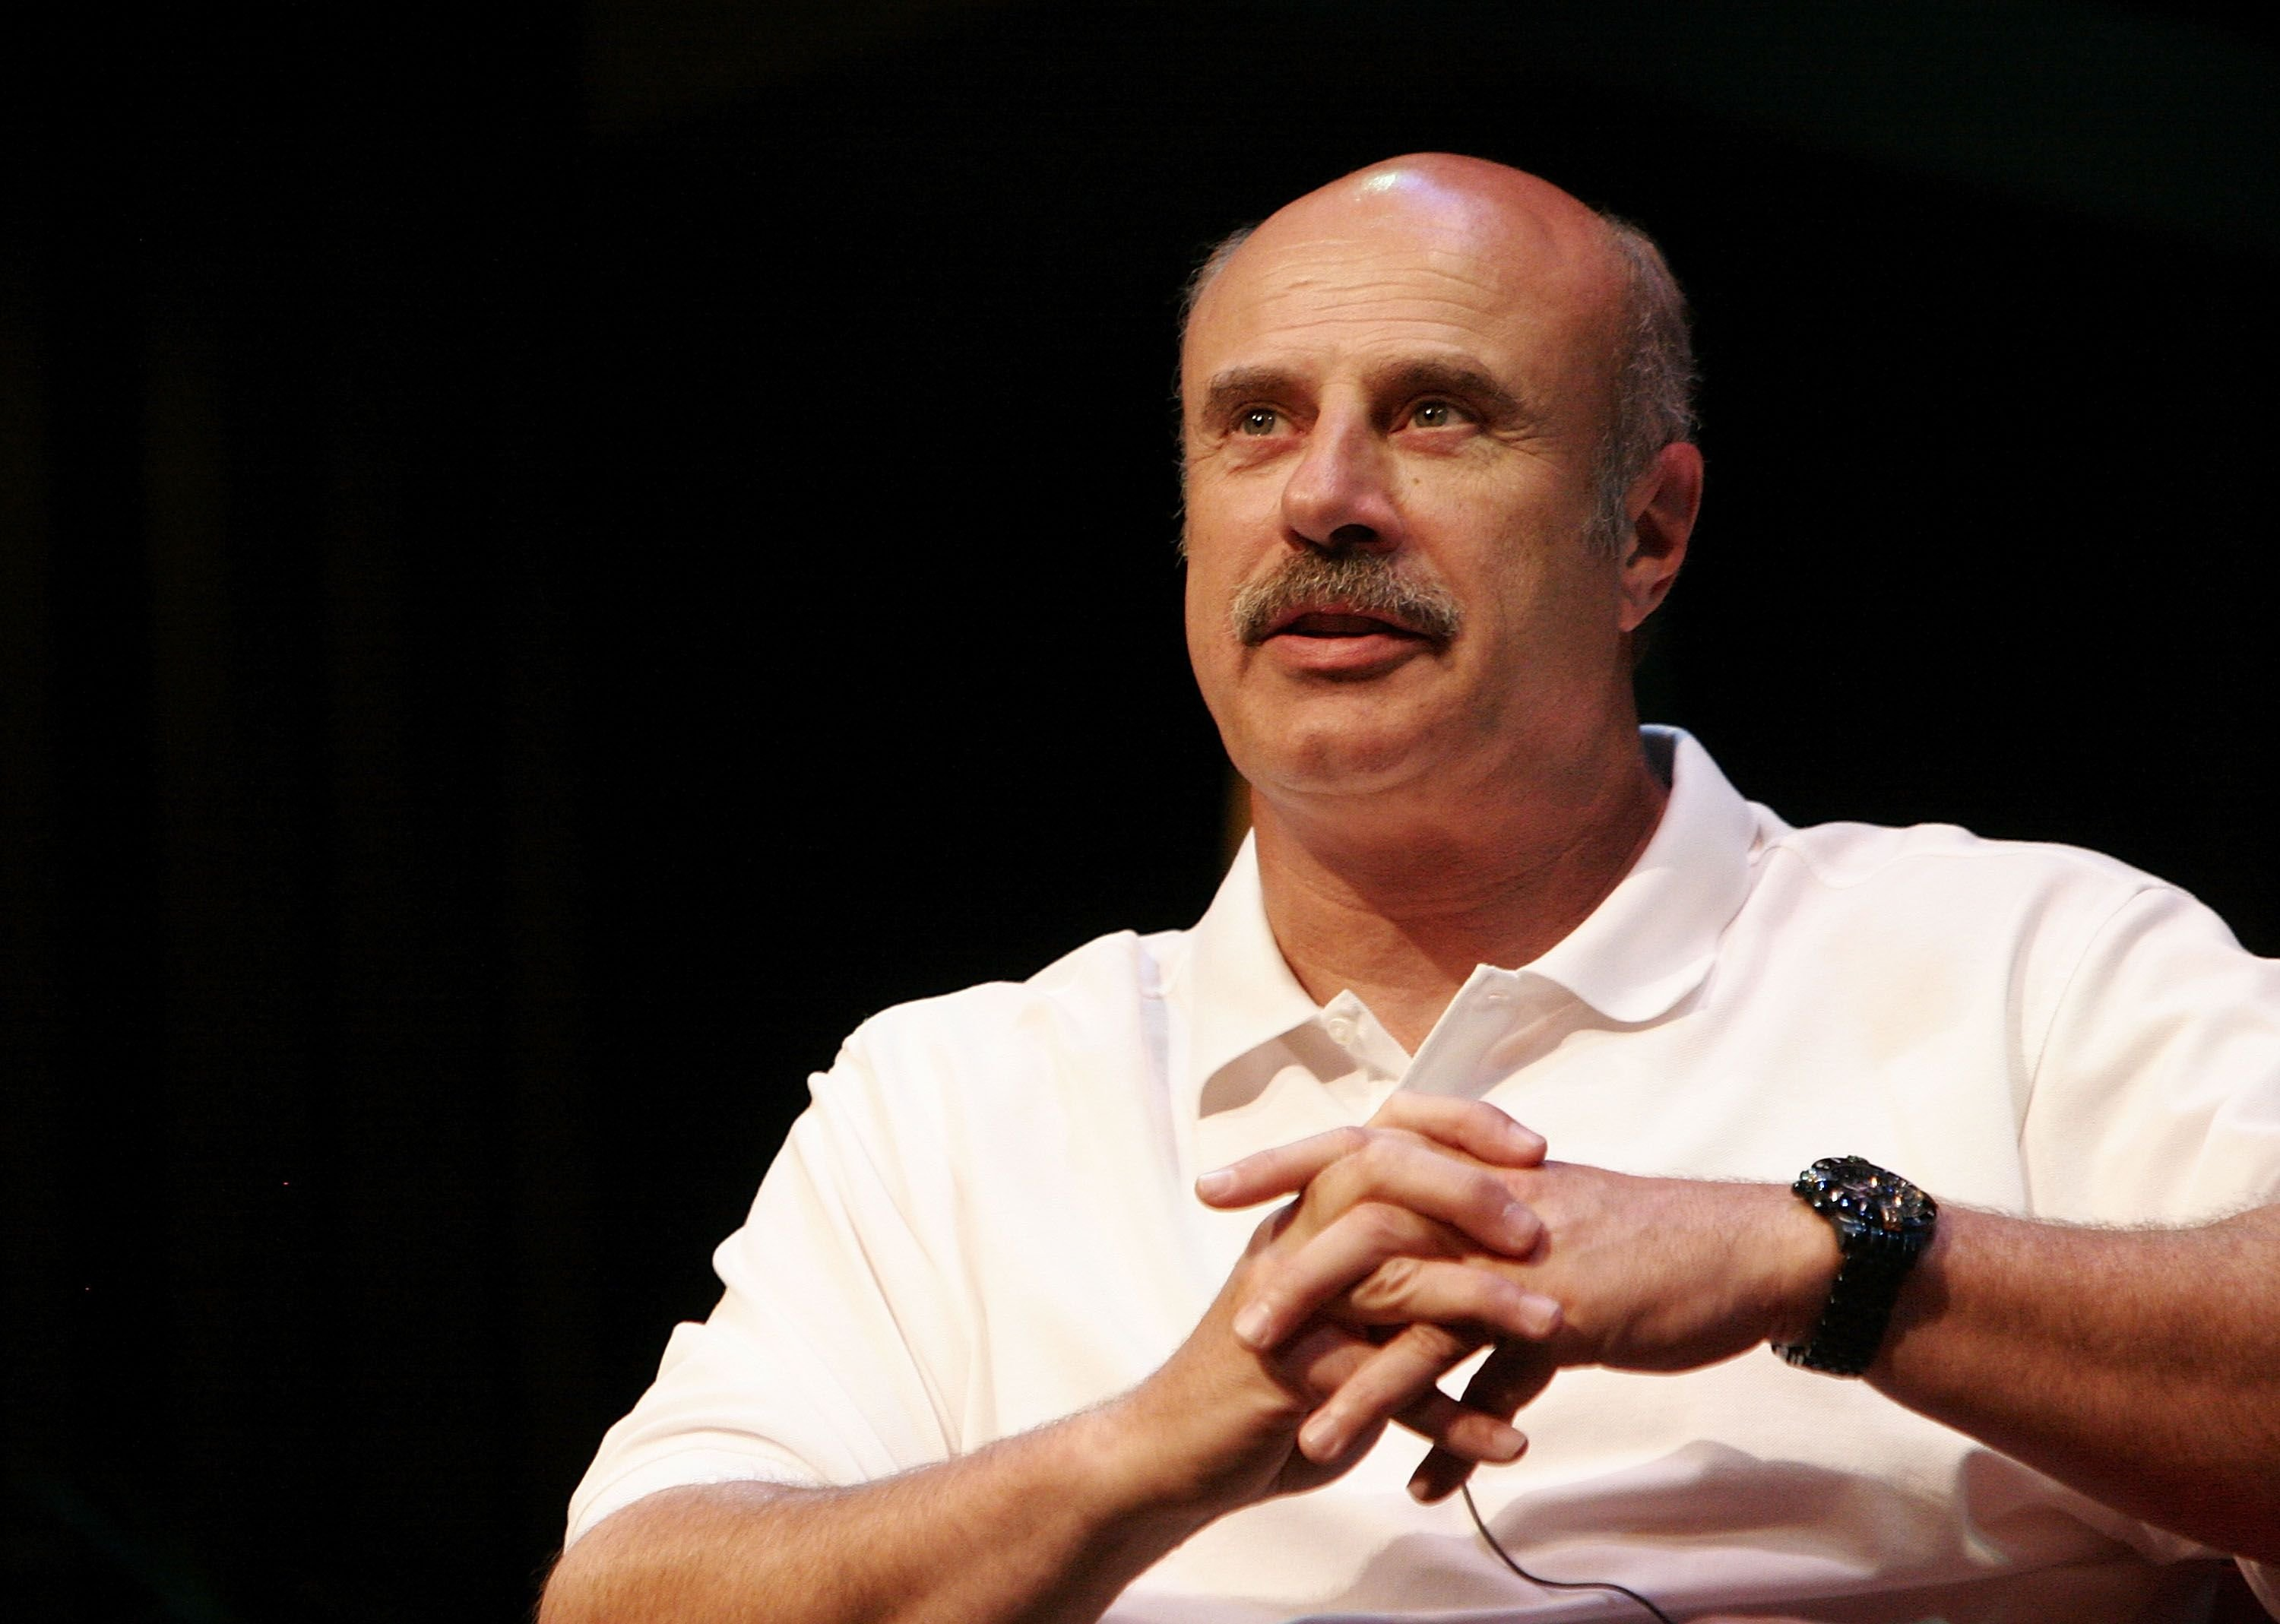 Morgan Stewart's future father-in-law Dr. Phil McGraw at the 12th Annual L.A. Times Festival of Books in 2007 | Source: Getty Images